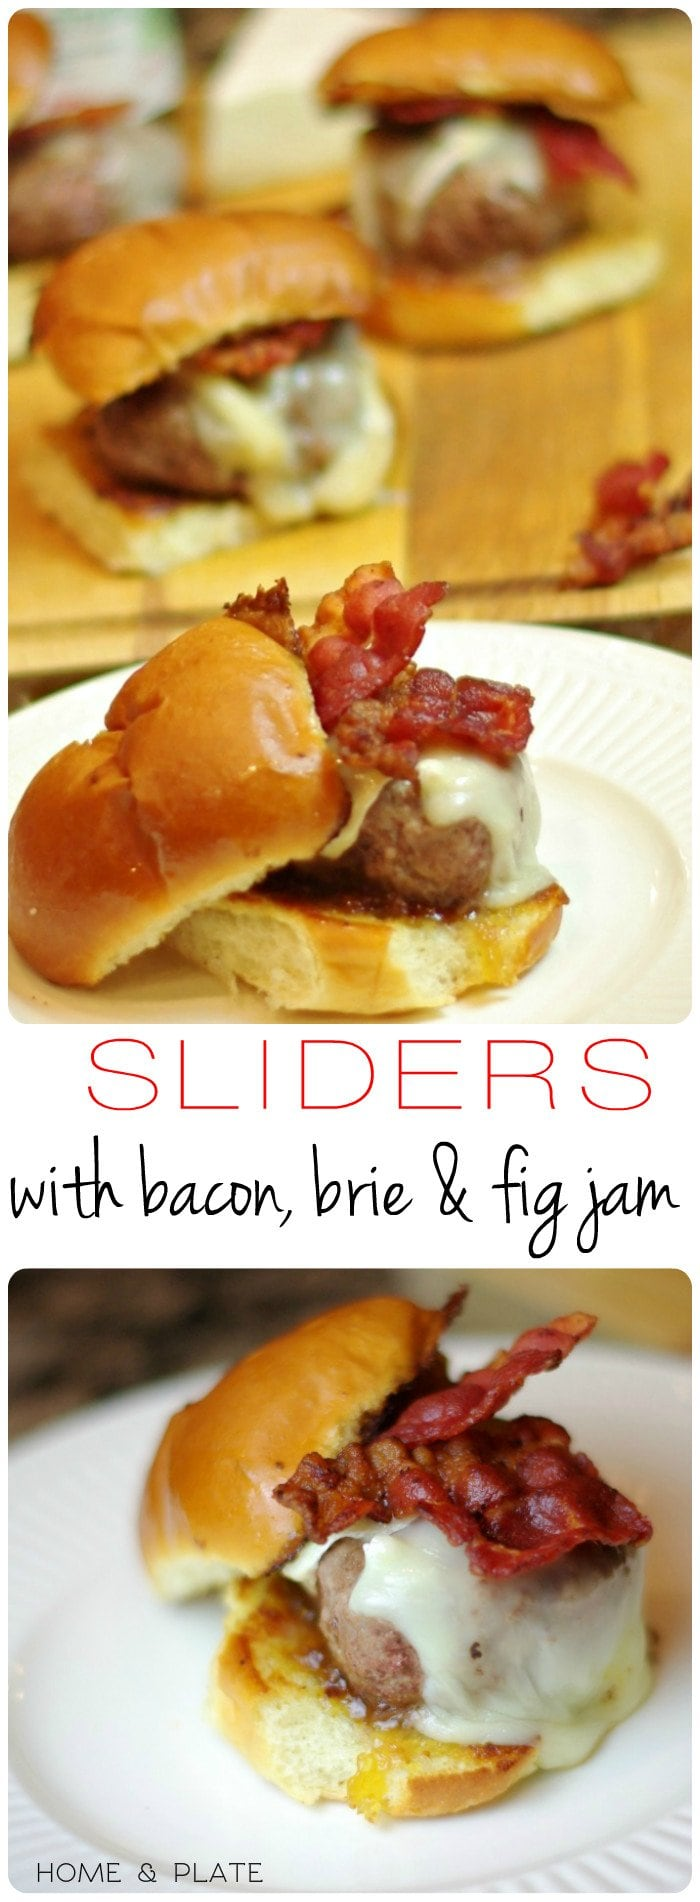 Sliders with Bacon, Brie & Fig Jam | Home & Plate | www.homeandplate.com | The taste of the Brie is buttery and creamy and melts quickly on the burger.The fig jam is the sweet condiment that binds the salty flavor of the bacon with the mild flavor of the meat.